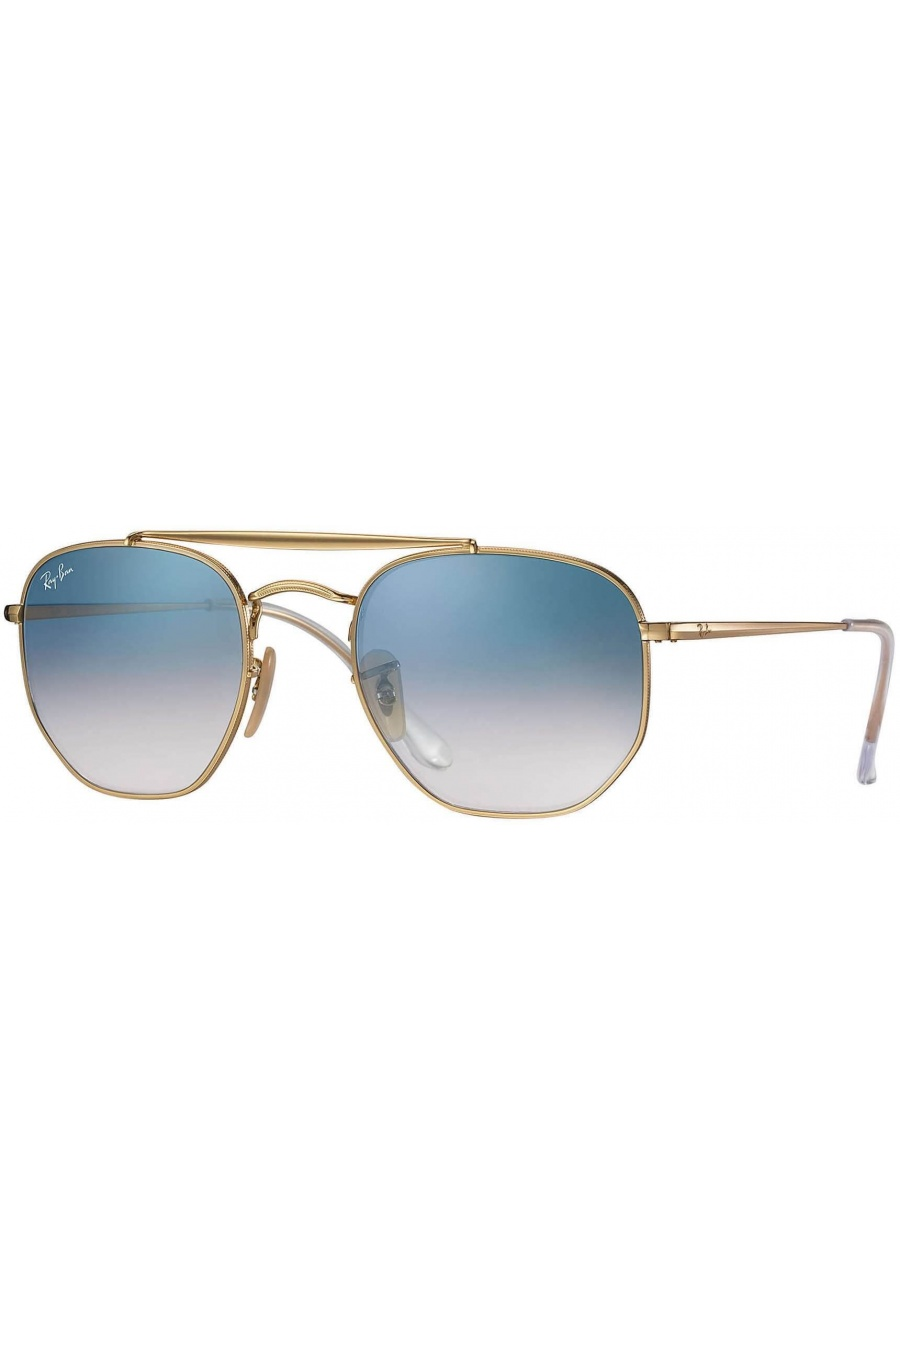 RAY-BAN RB3648 001/3F 54 THE MARSHAL